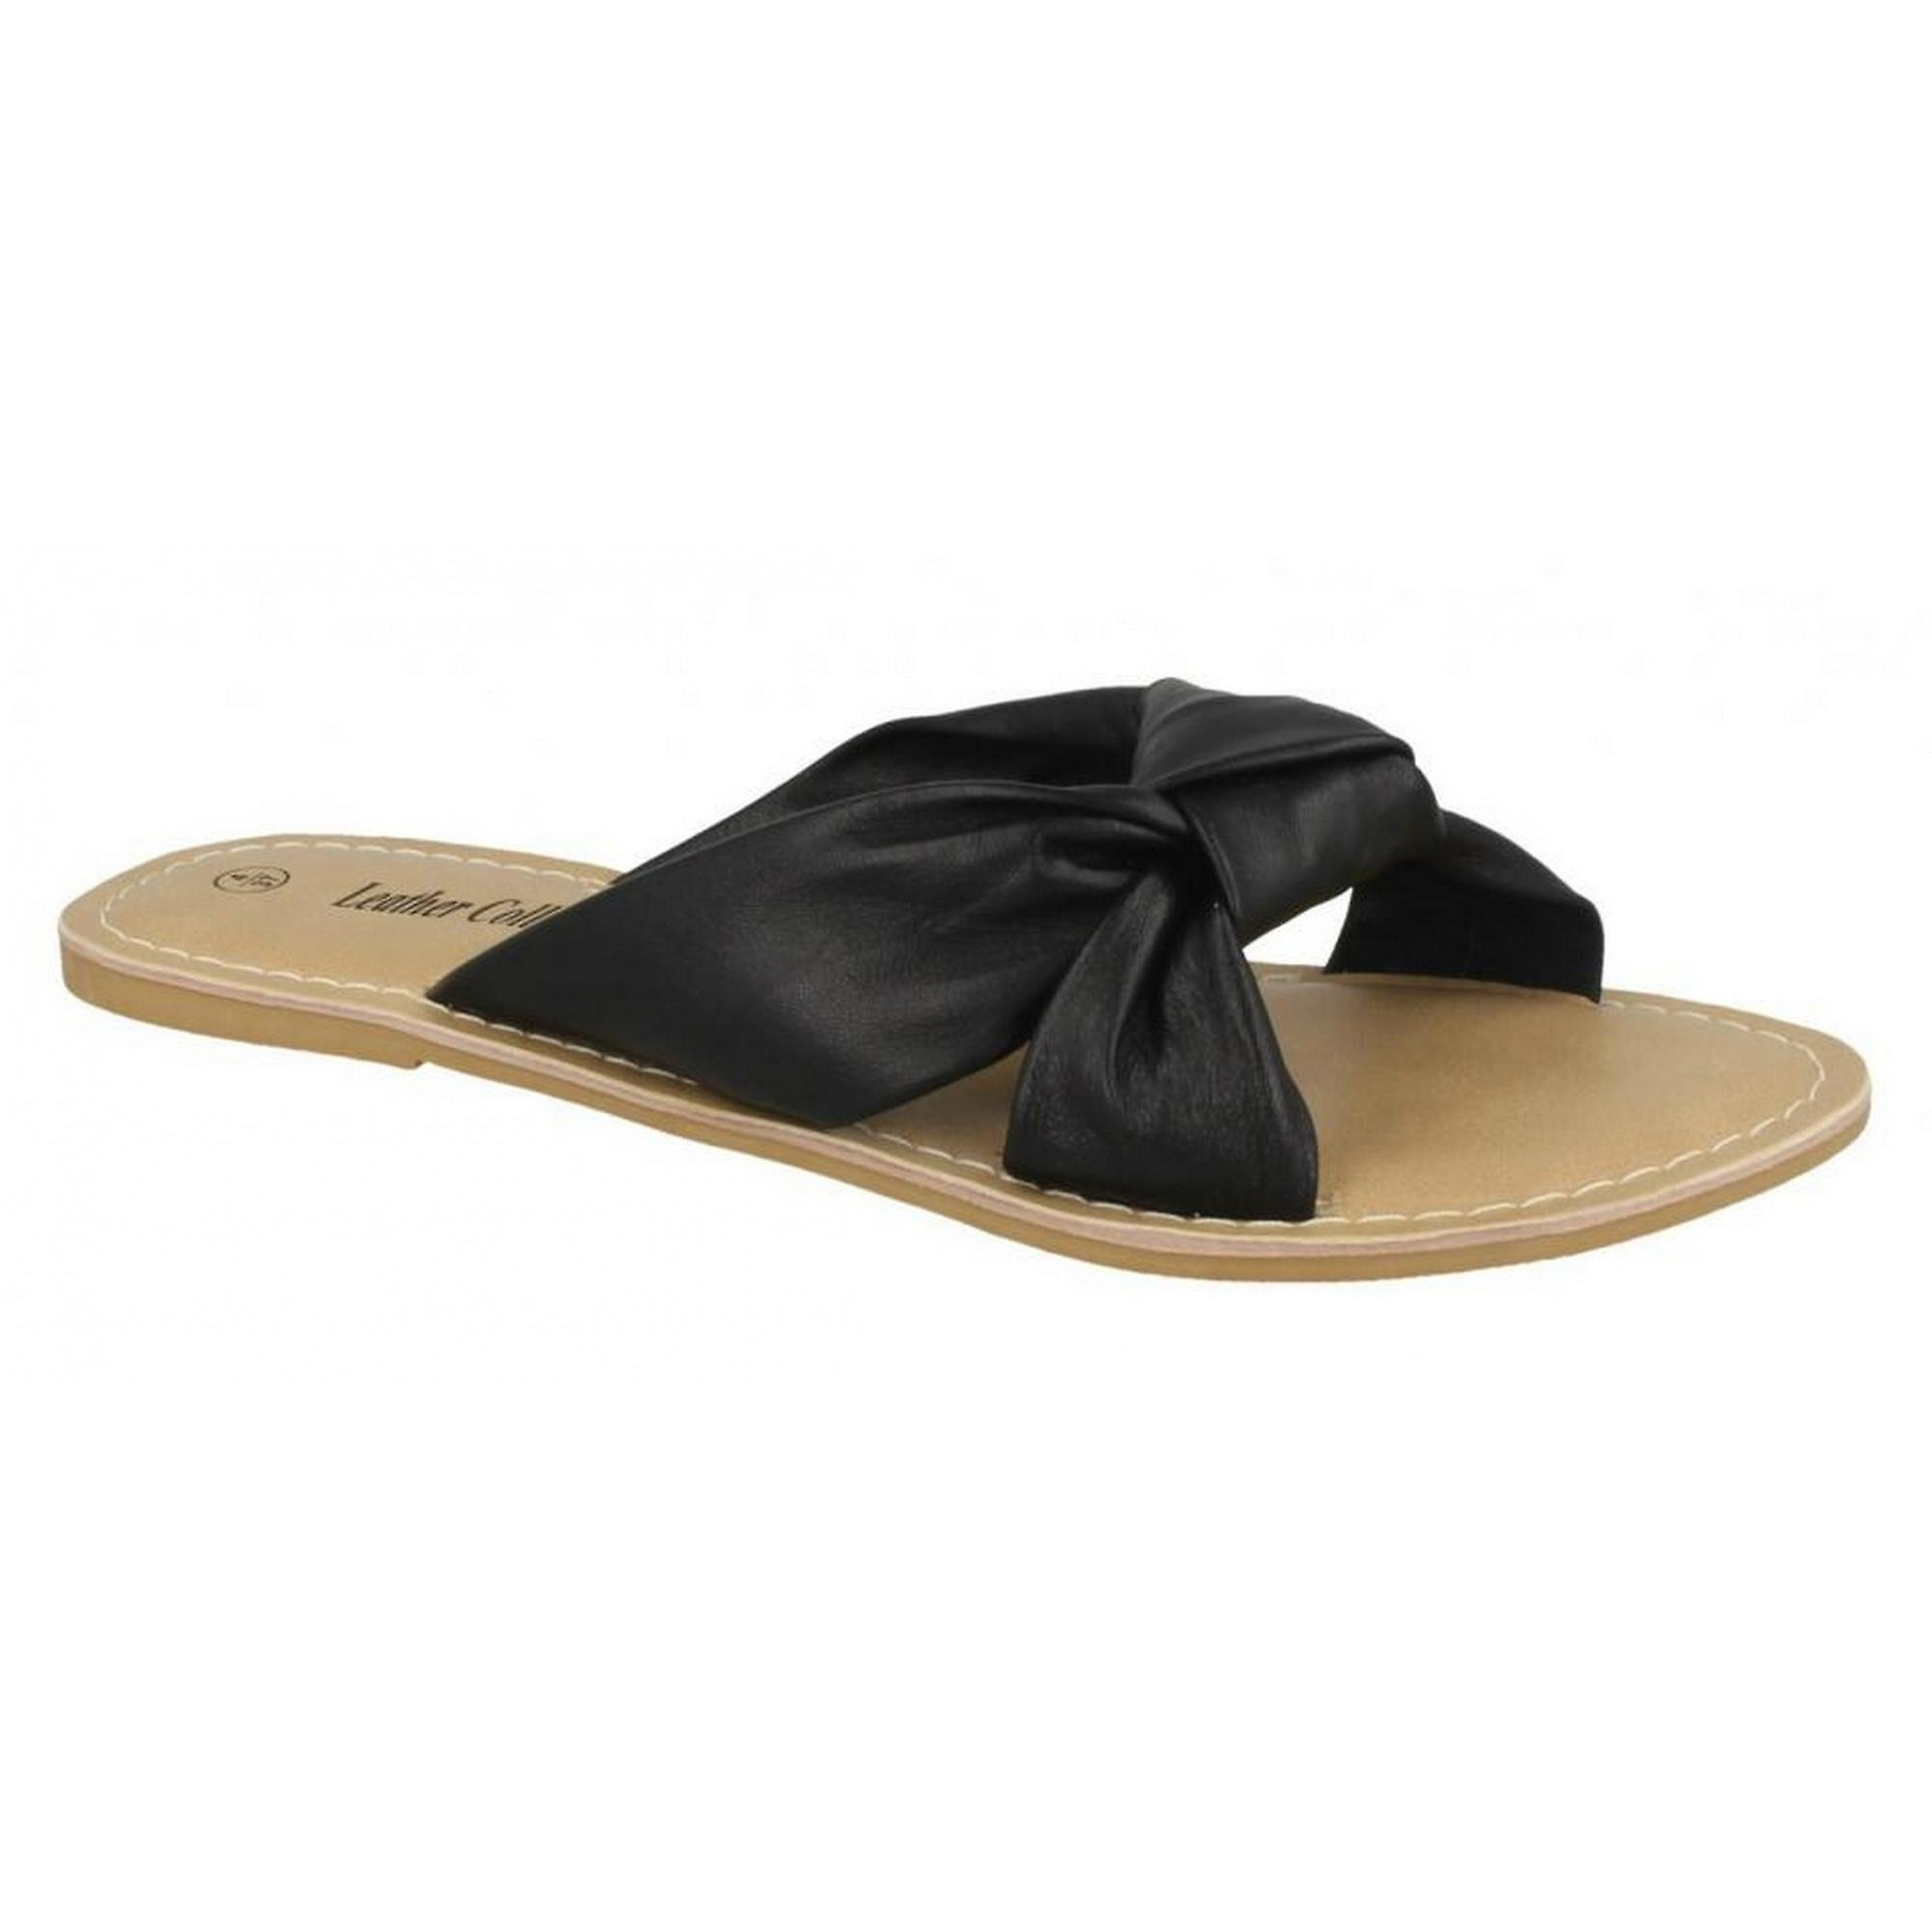 Vamp Knot Leather Sandals Collection Ladies Mule Womens Pznnt8WI